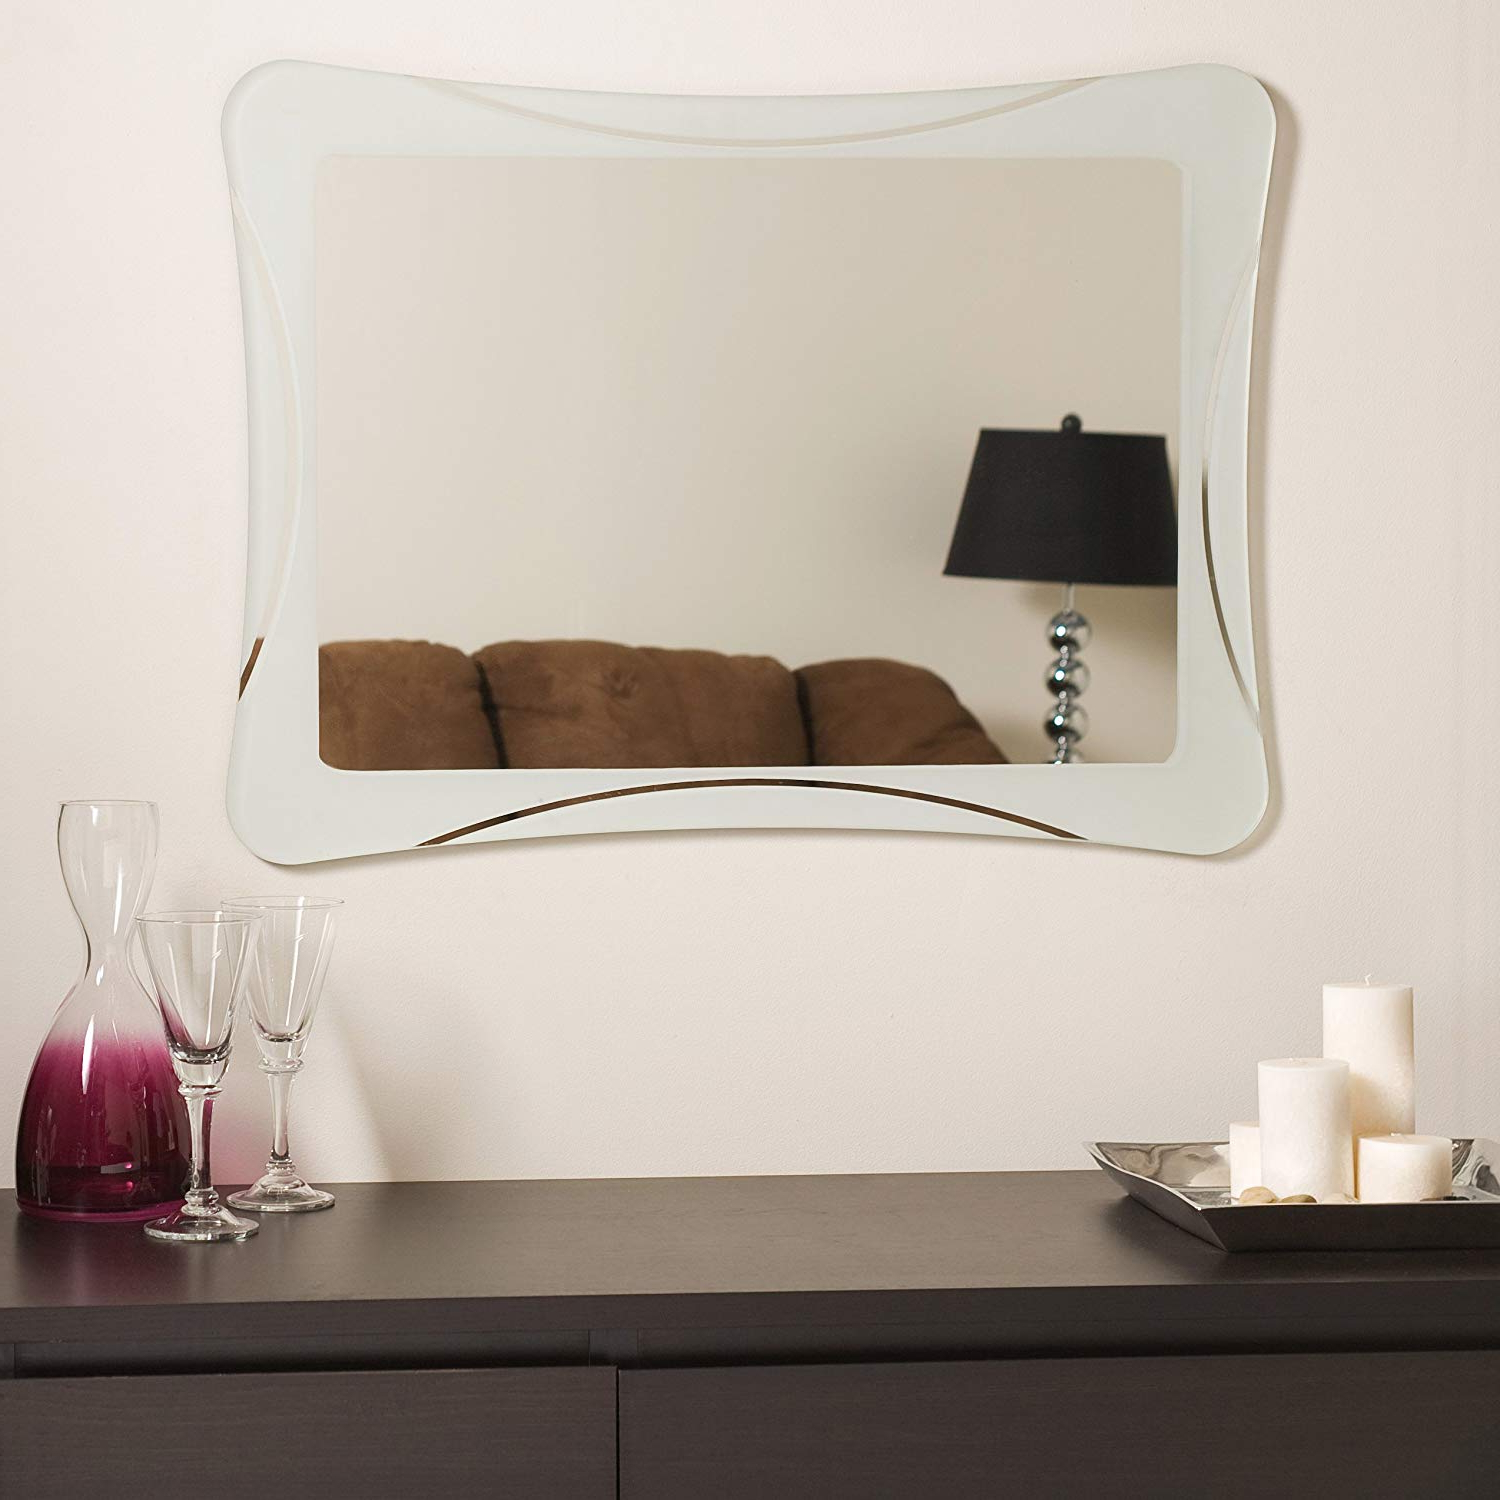 Amazon: Decor Wonderland Frameless Shapes Mirror: Home & Kitchen With Widely Used Logan Frameless Wall Mirrors (View 18 of 20)